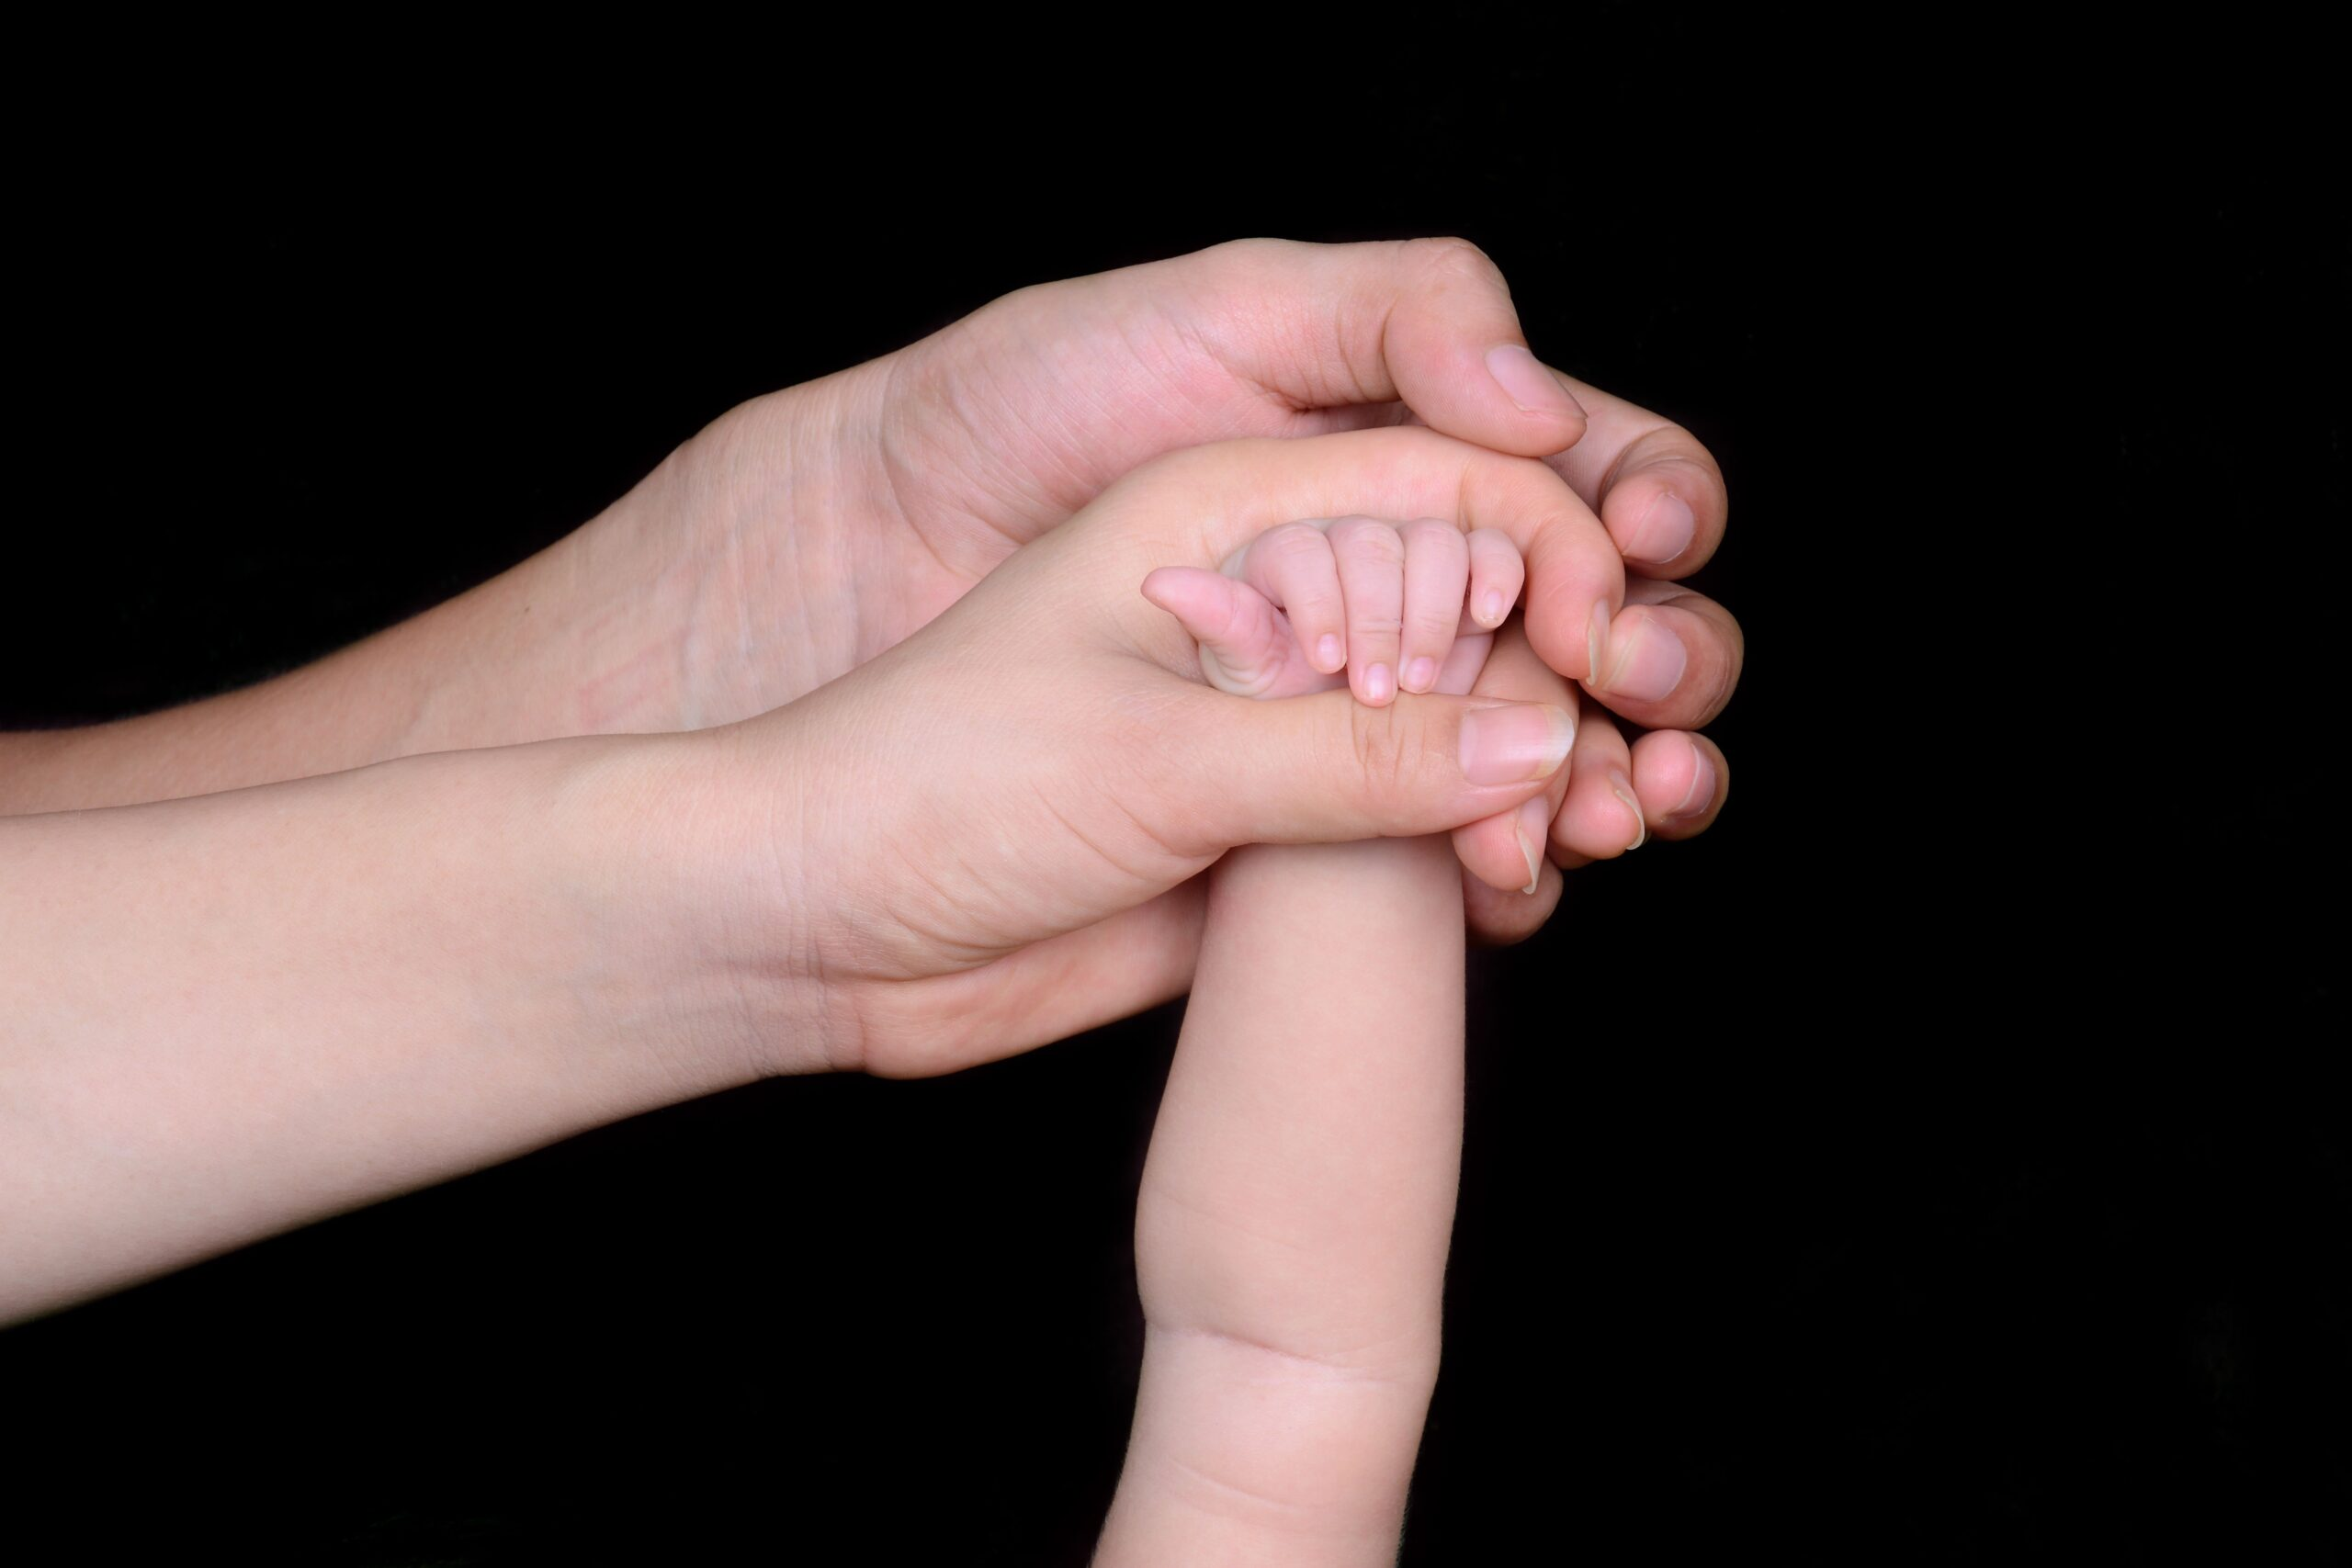 father's hand holding mother's hand holding babies hand